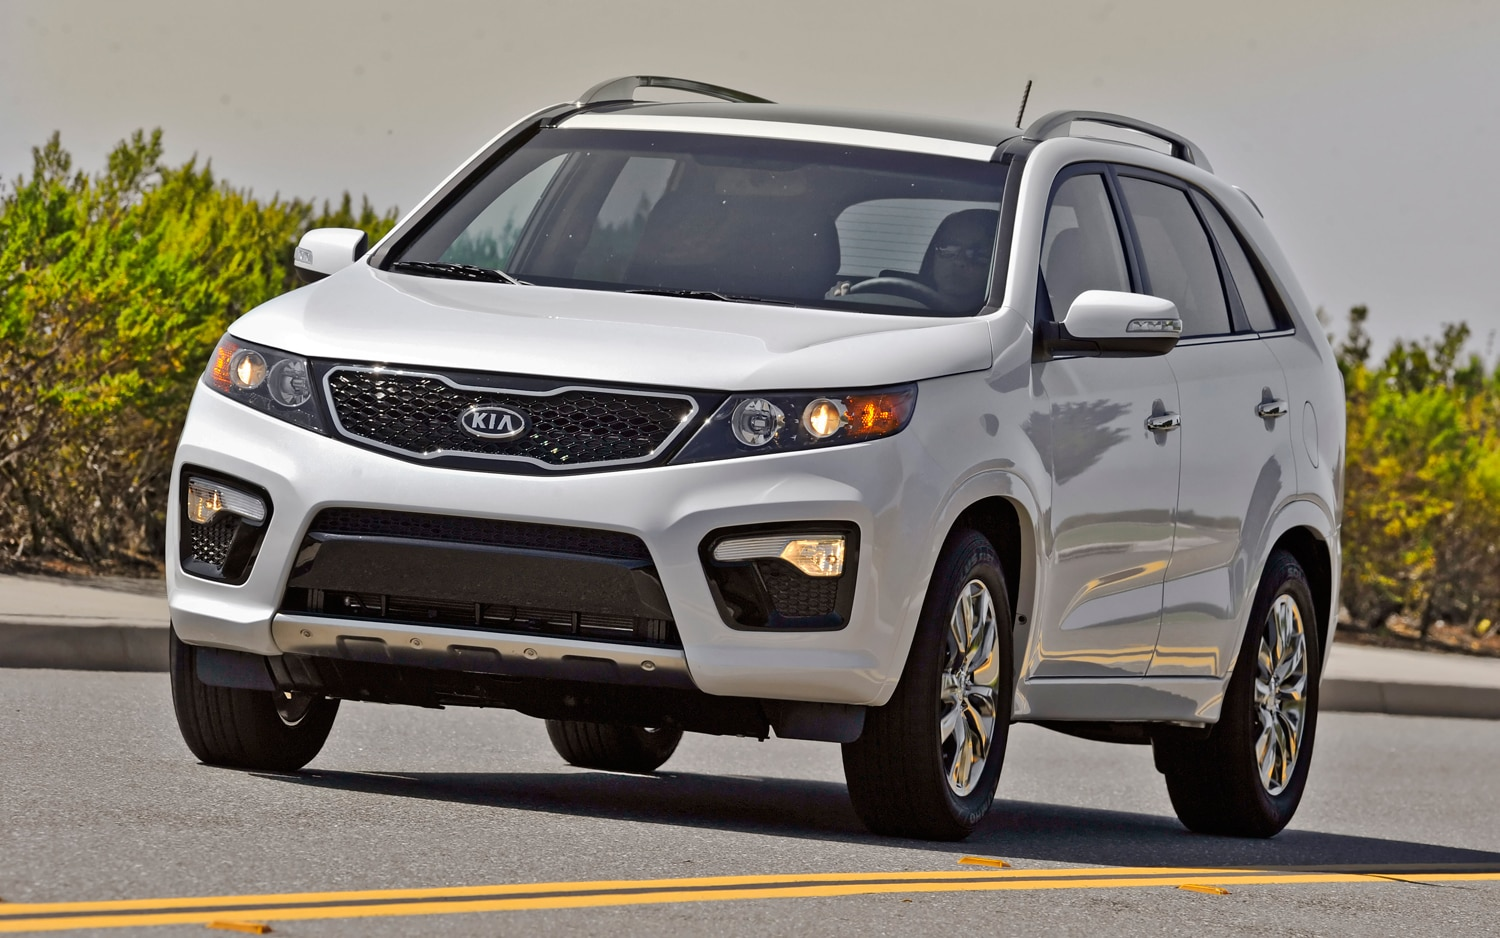 2012 Kia Sorento Front Left View 4